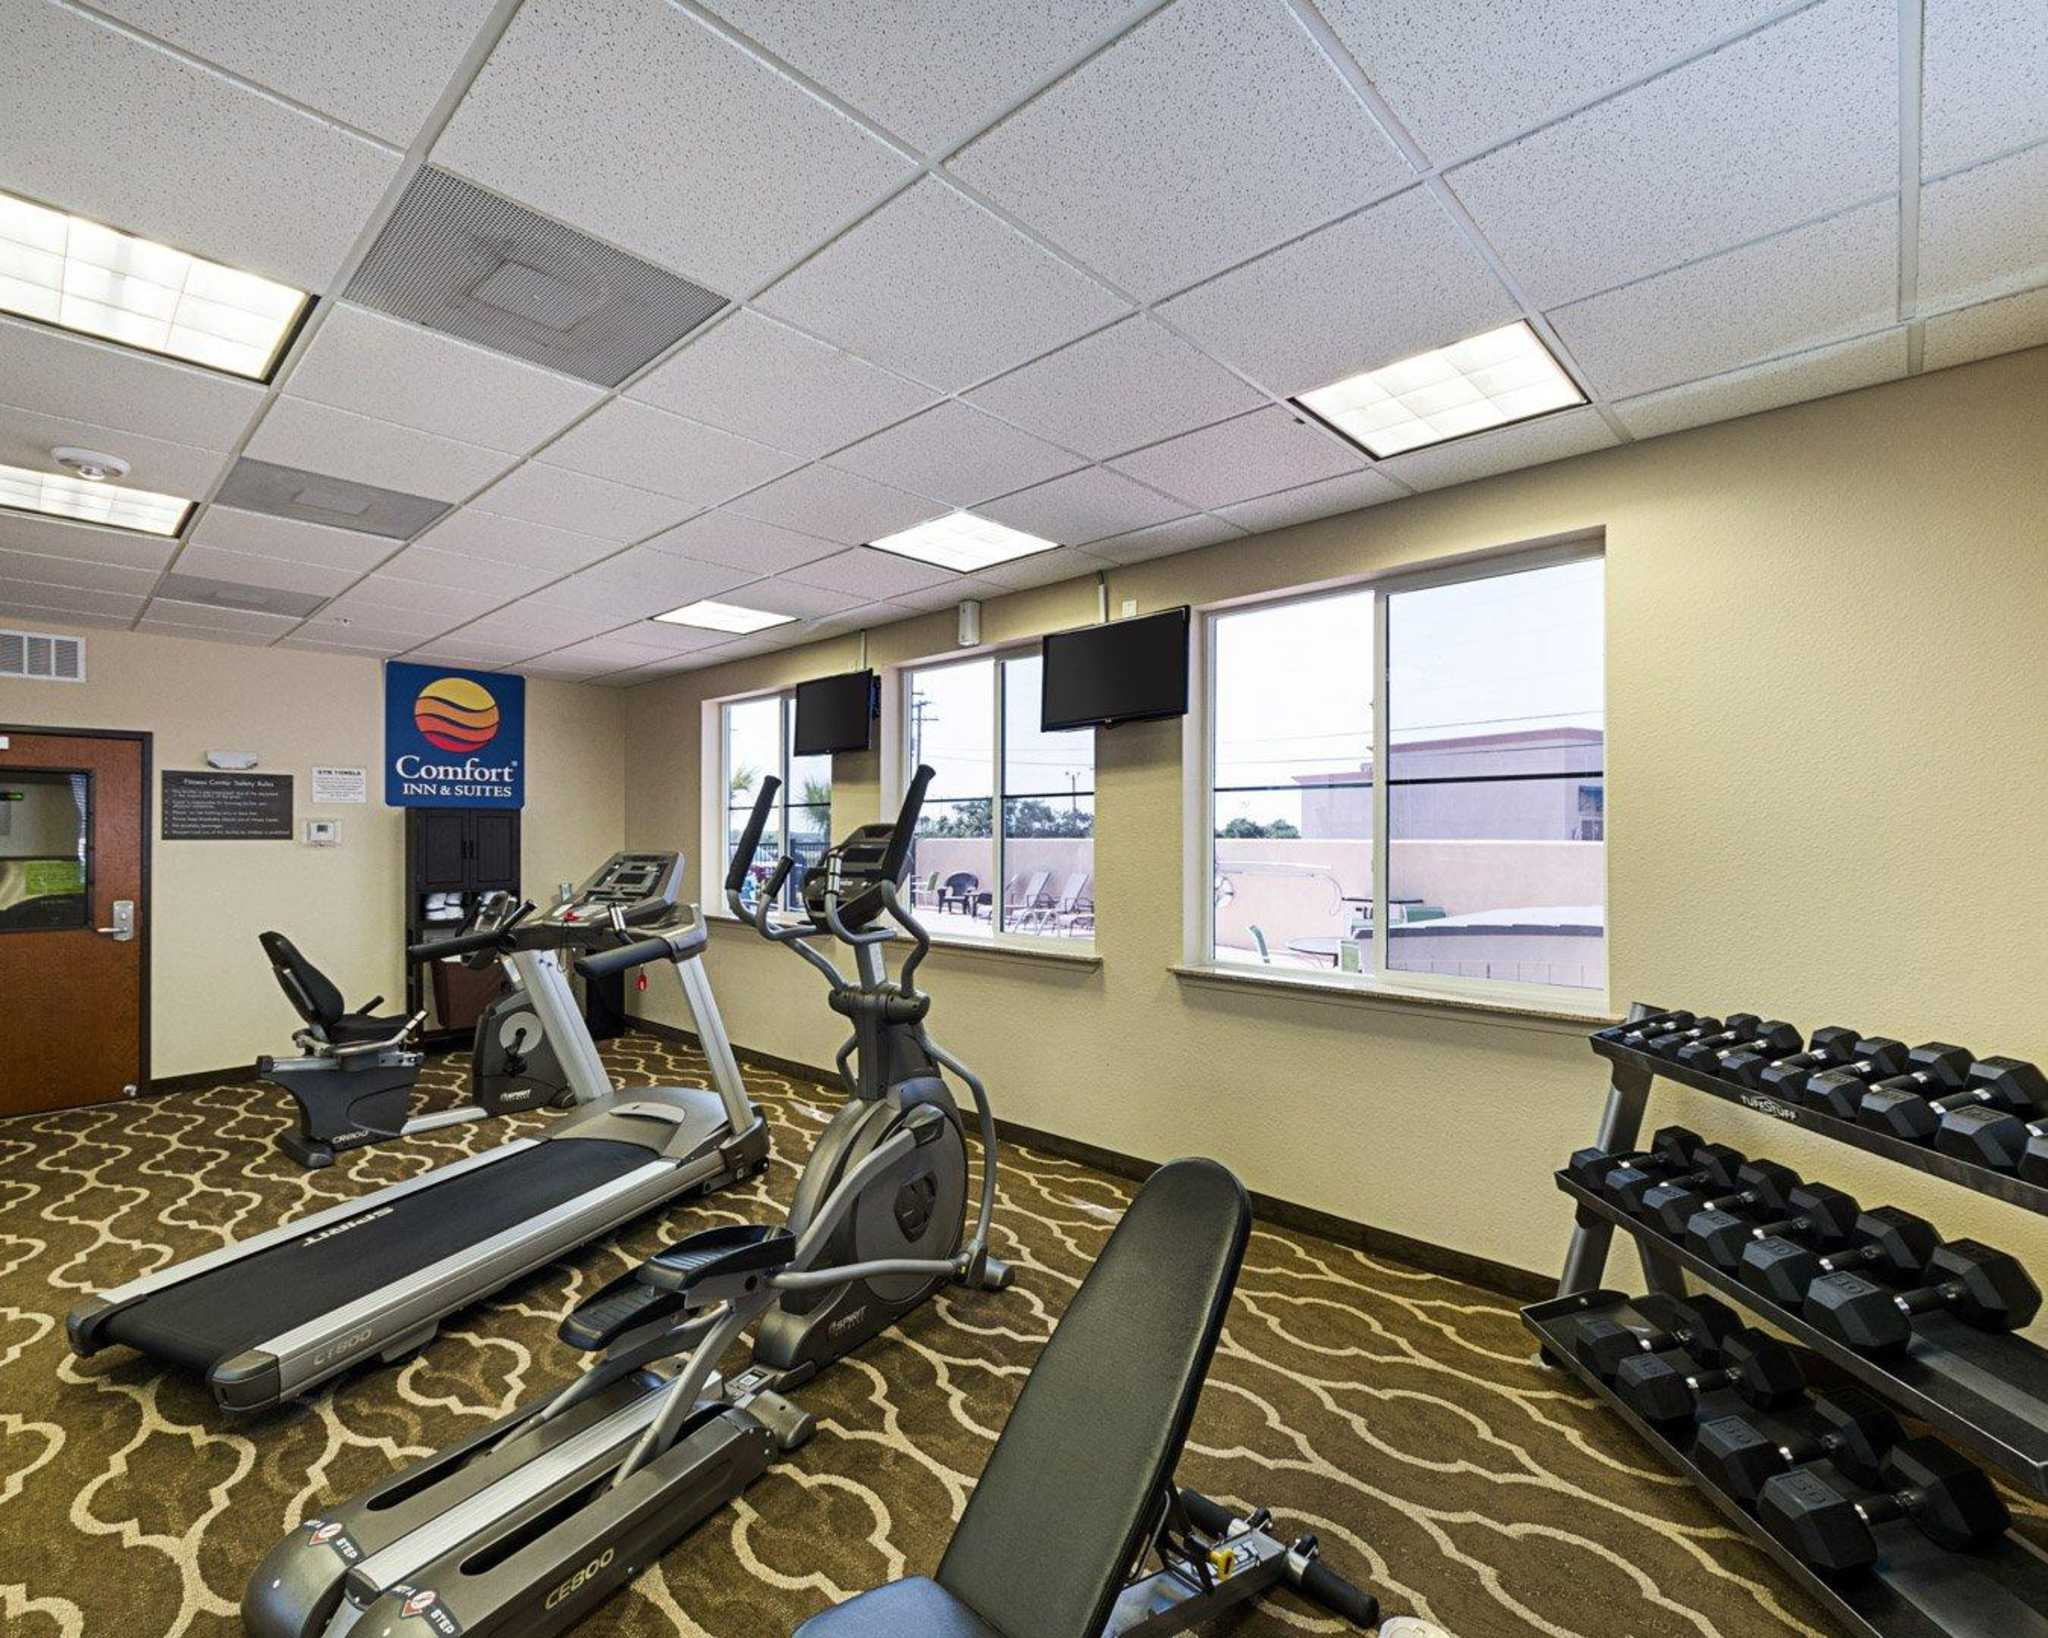 Comfort Inn Amp Suites Lakeside Coupons Eagle Pass Tx Near